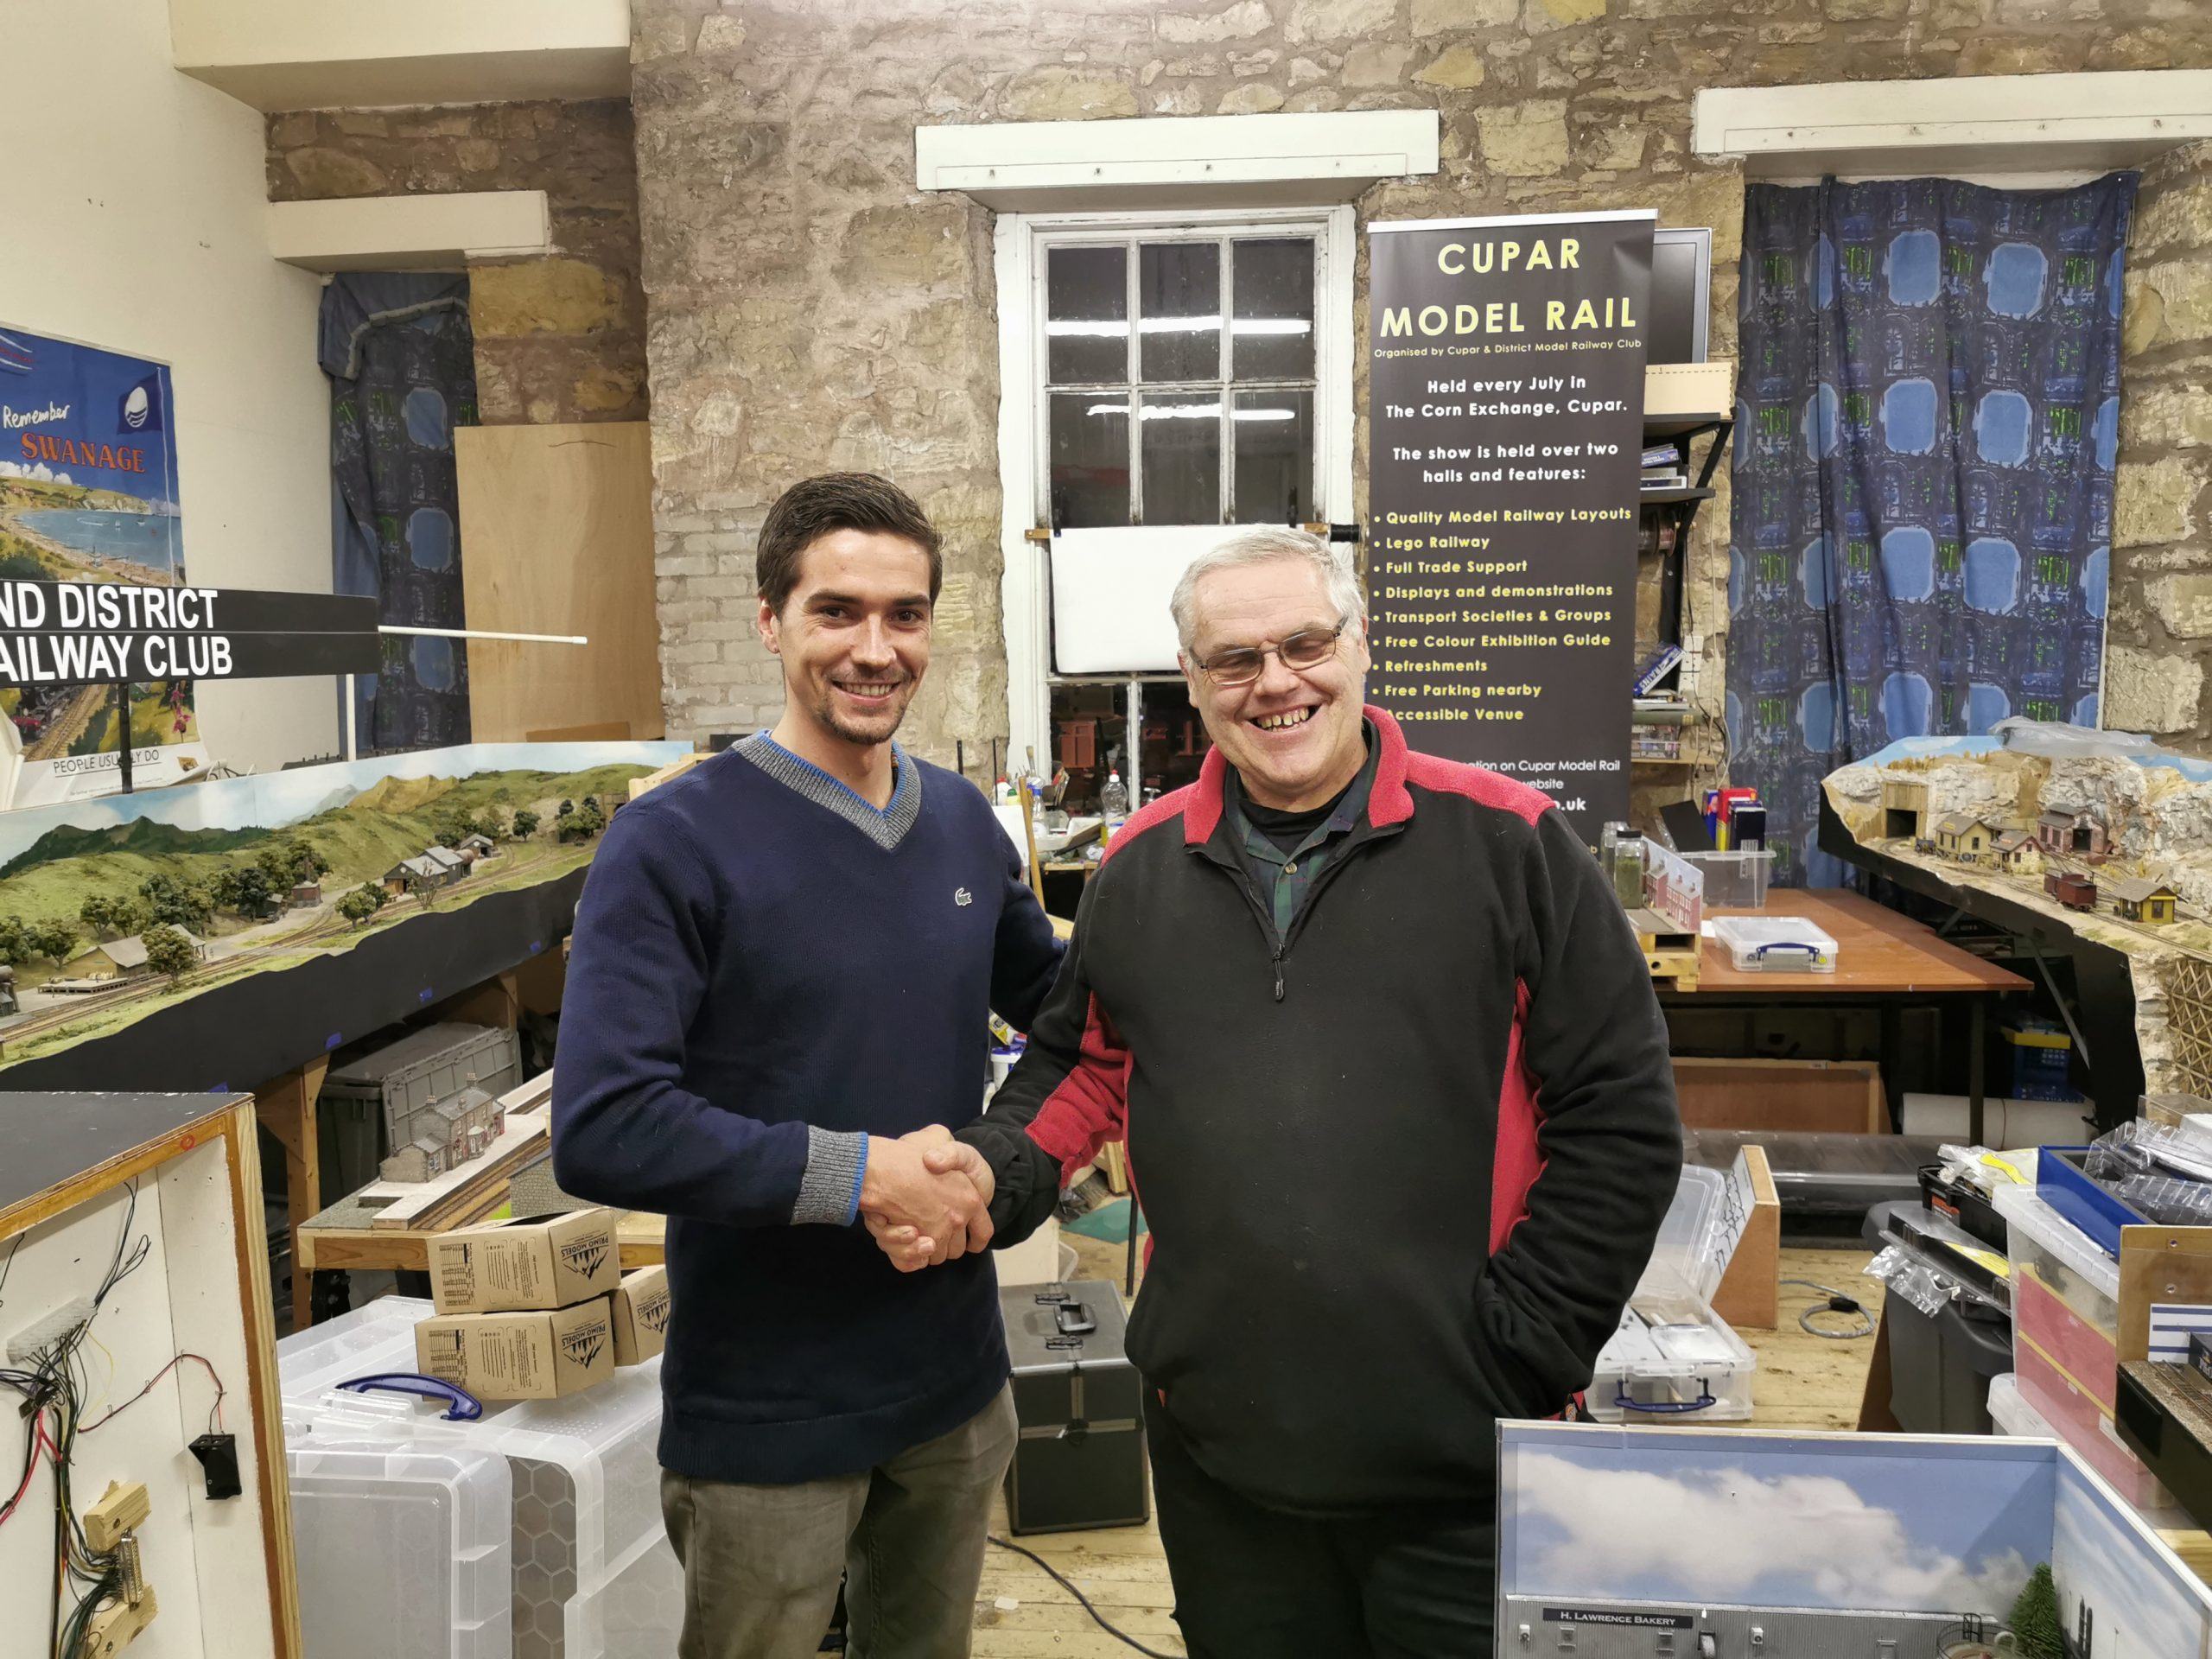 Primo Models director shaking hand with the Cupar Club Chariman